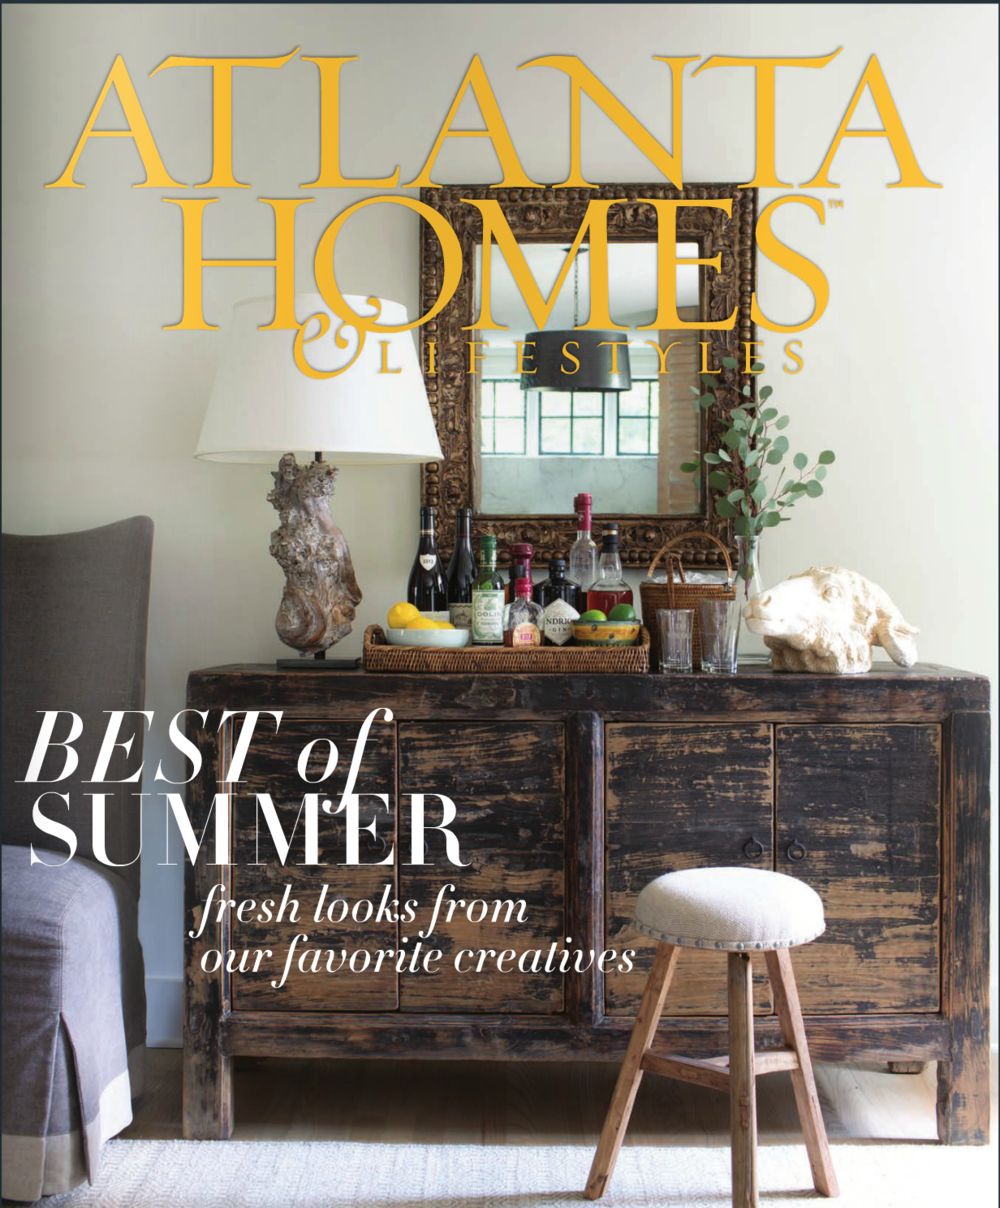 Atlanta Homes & Lifestyles: Summer 2015